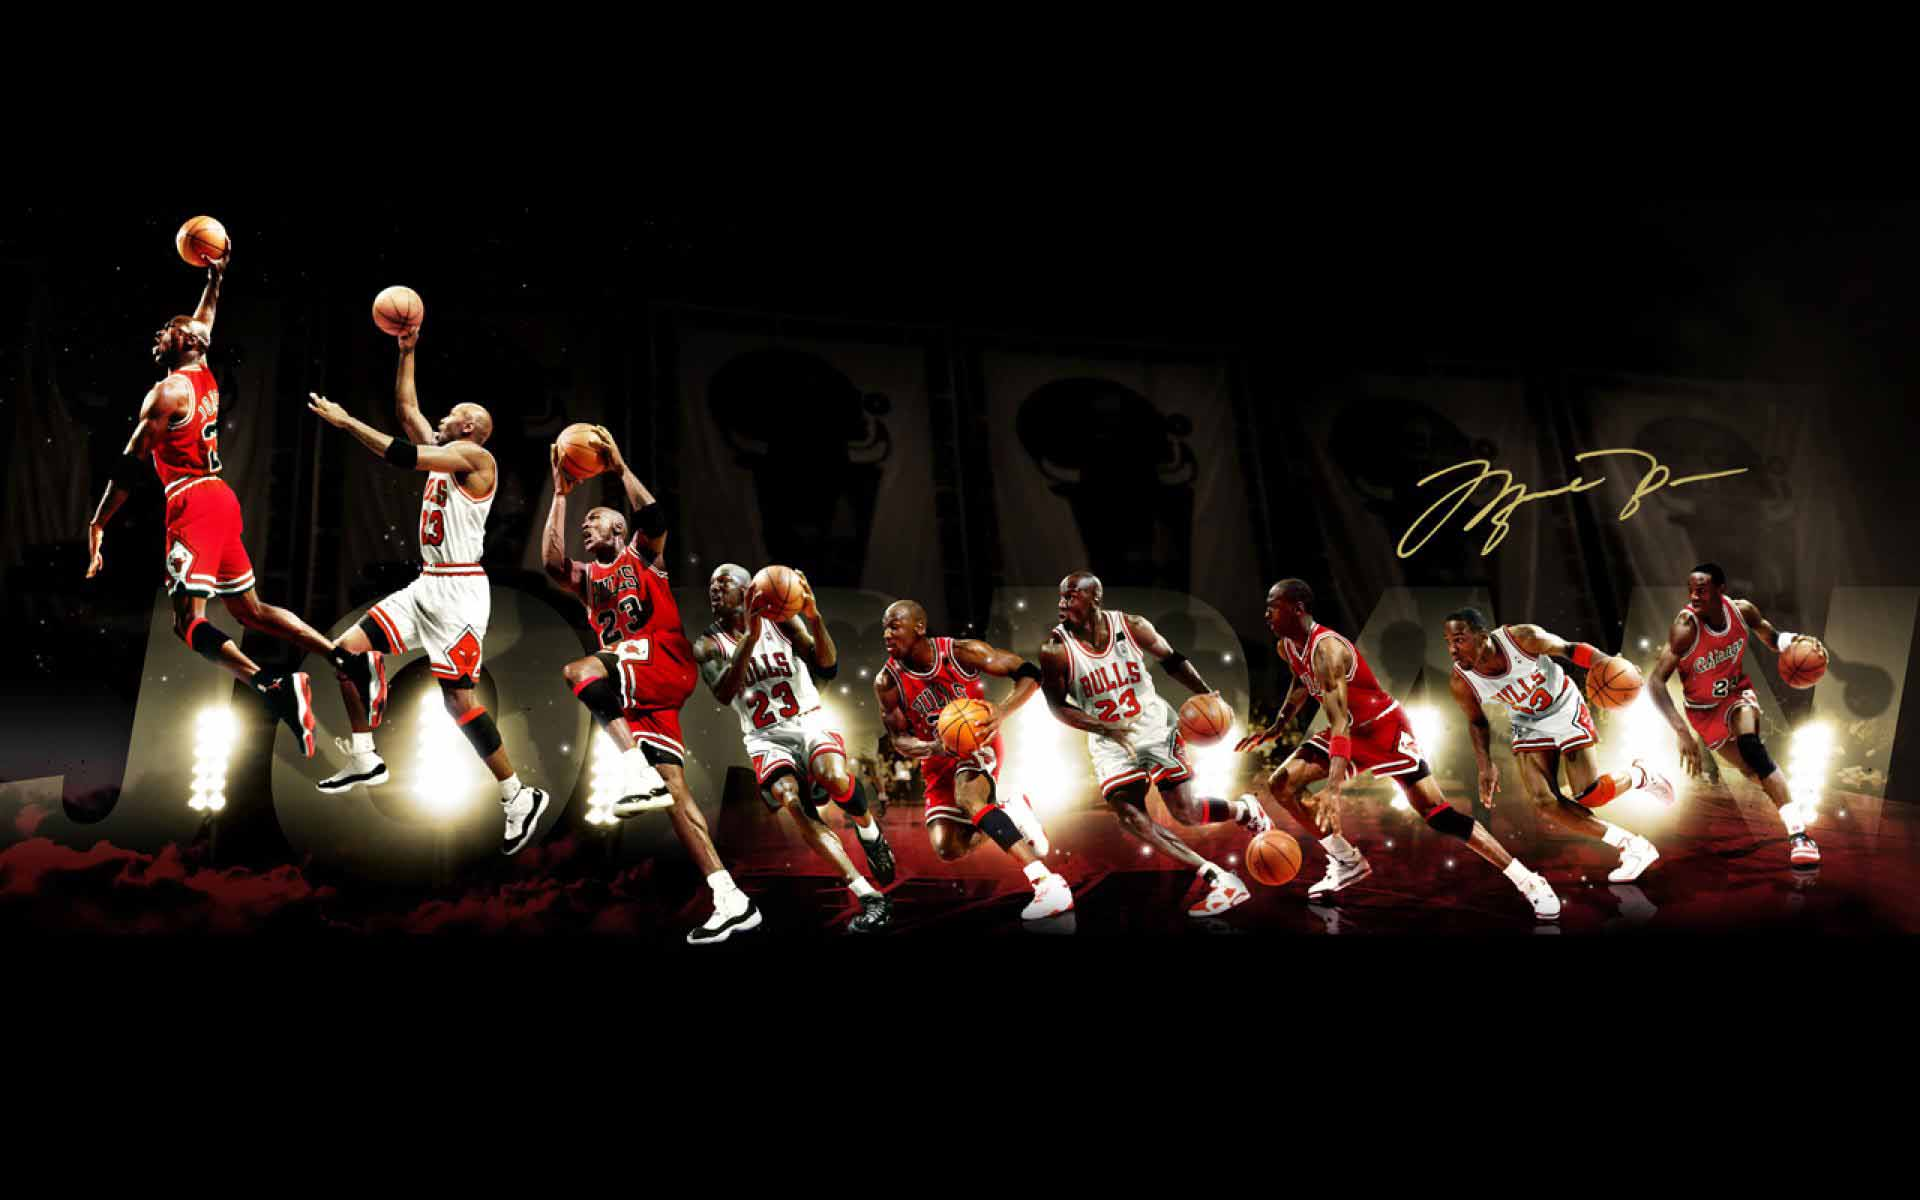 Wallpaper Sports Wallpapers 1920x1200px